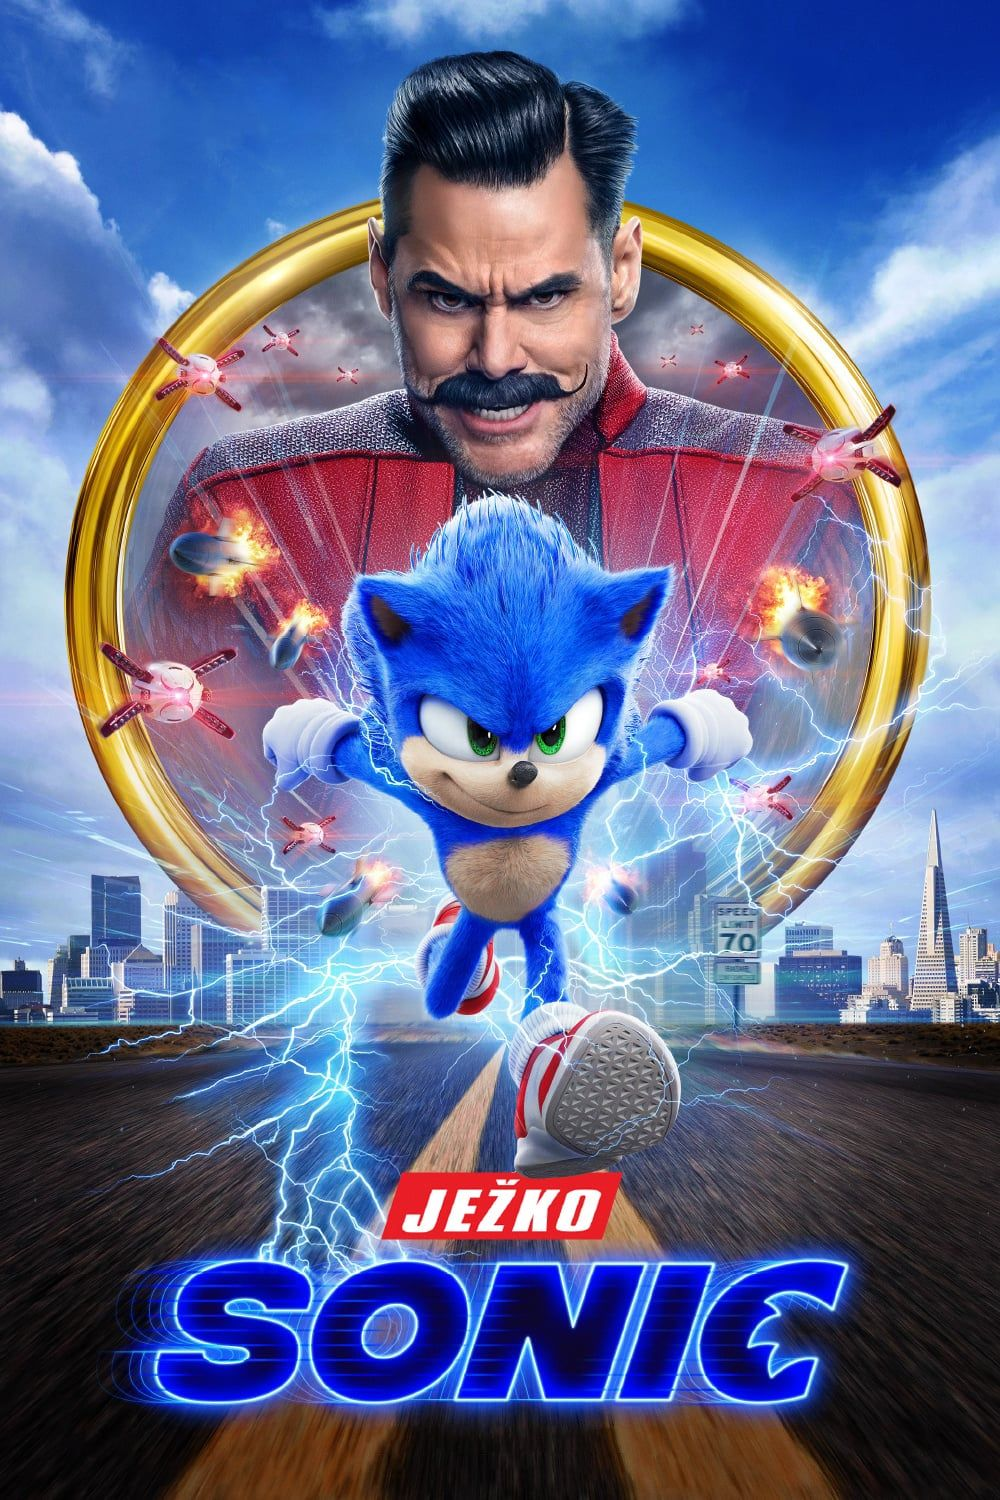 Sonic the Hedgehog hela Filmen på nätet undertexter hd in